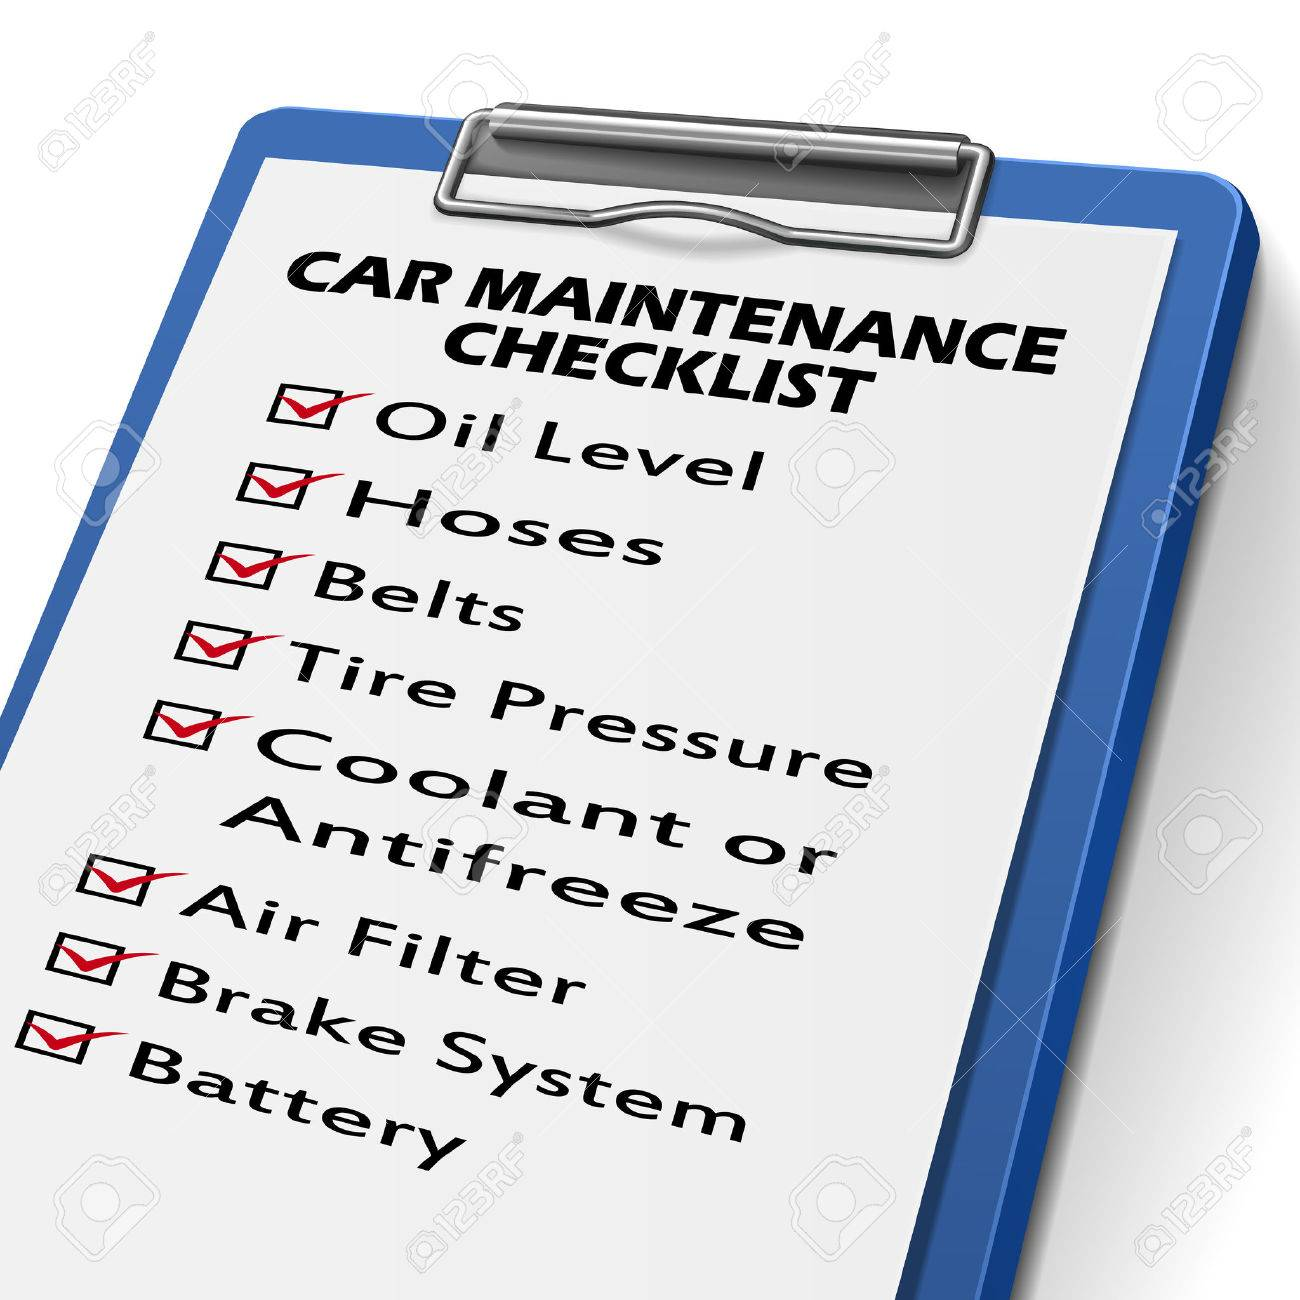 Car Maintenance Checklist >> Car Maintenance Checklist Clipboard With Check Boxes Marked For